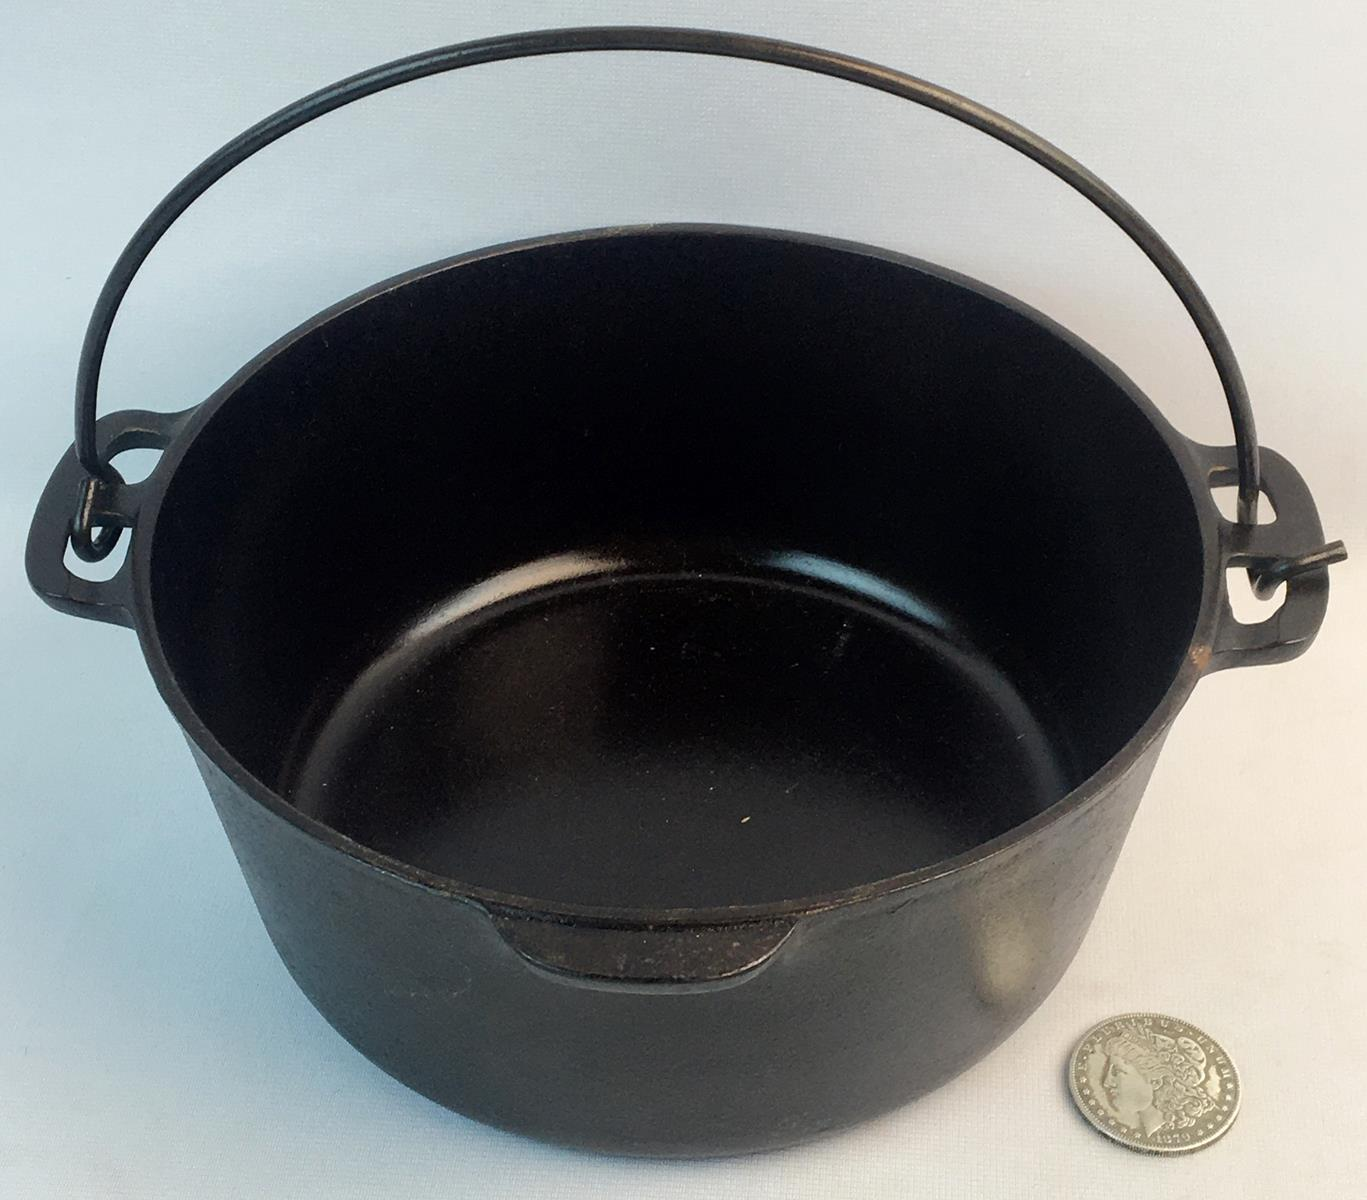 RARE Vintage c. 1920 Wagner Sidney O. No. 7 Cast Iron Dutch Oven